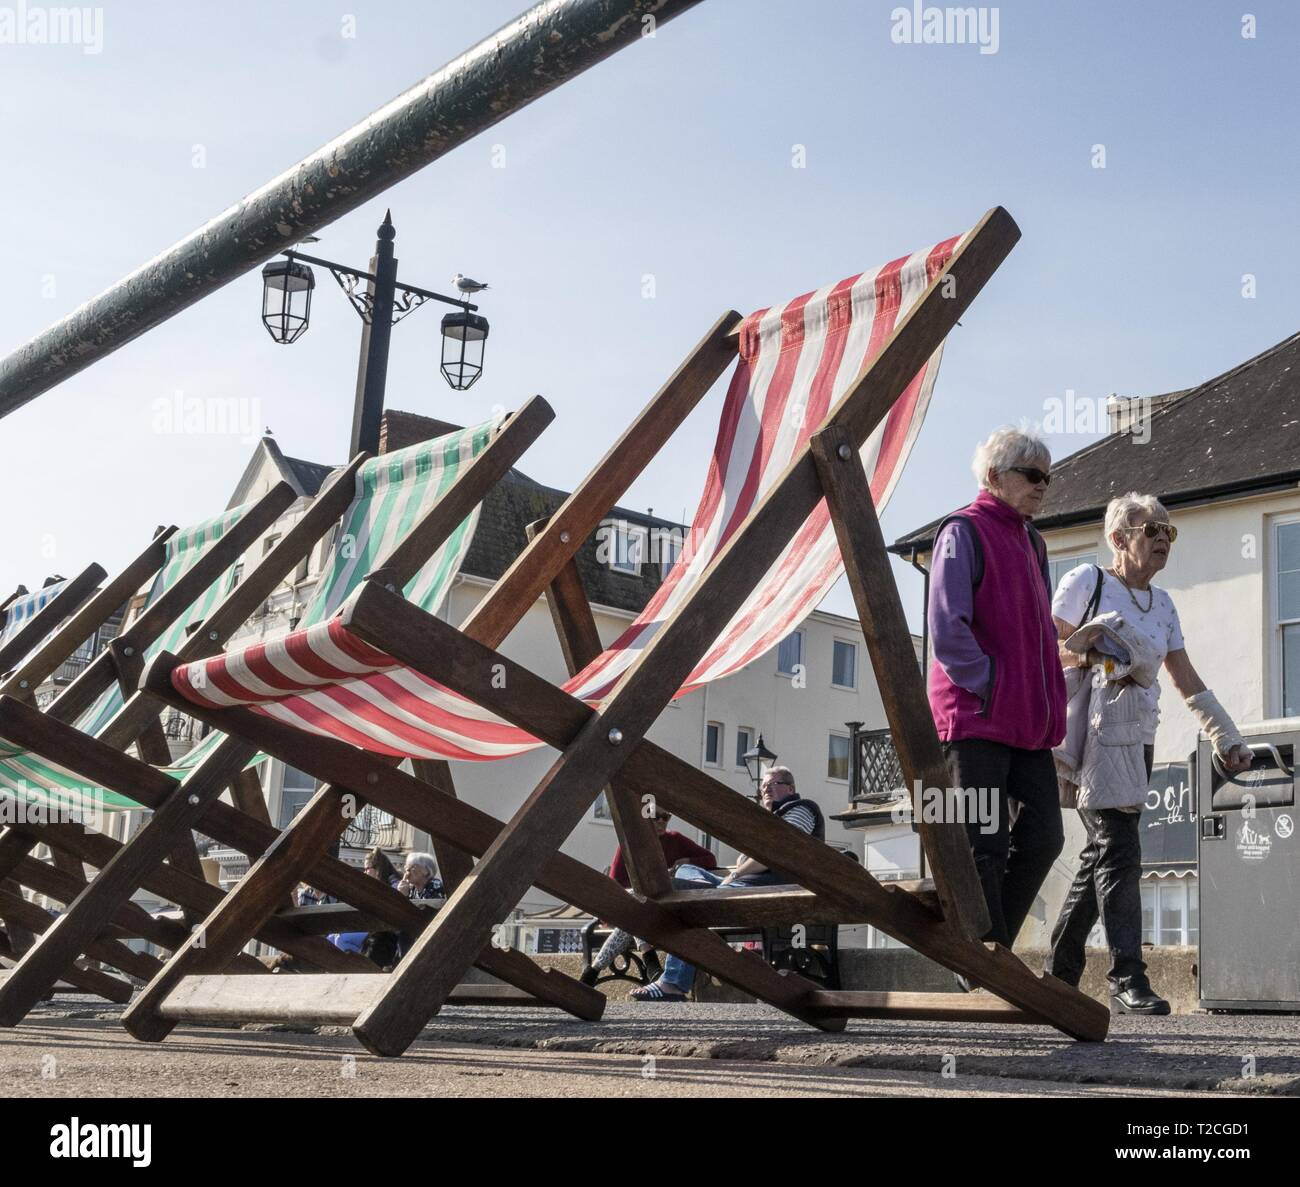 Sidmouth, 1st Apr 19 With the arrival of April, deckchairs are once more out along the seafront at Sidmouth in Devon on a glorious springtime day. Credit: Photo Central/Alamy Live News Stock Photo